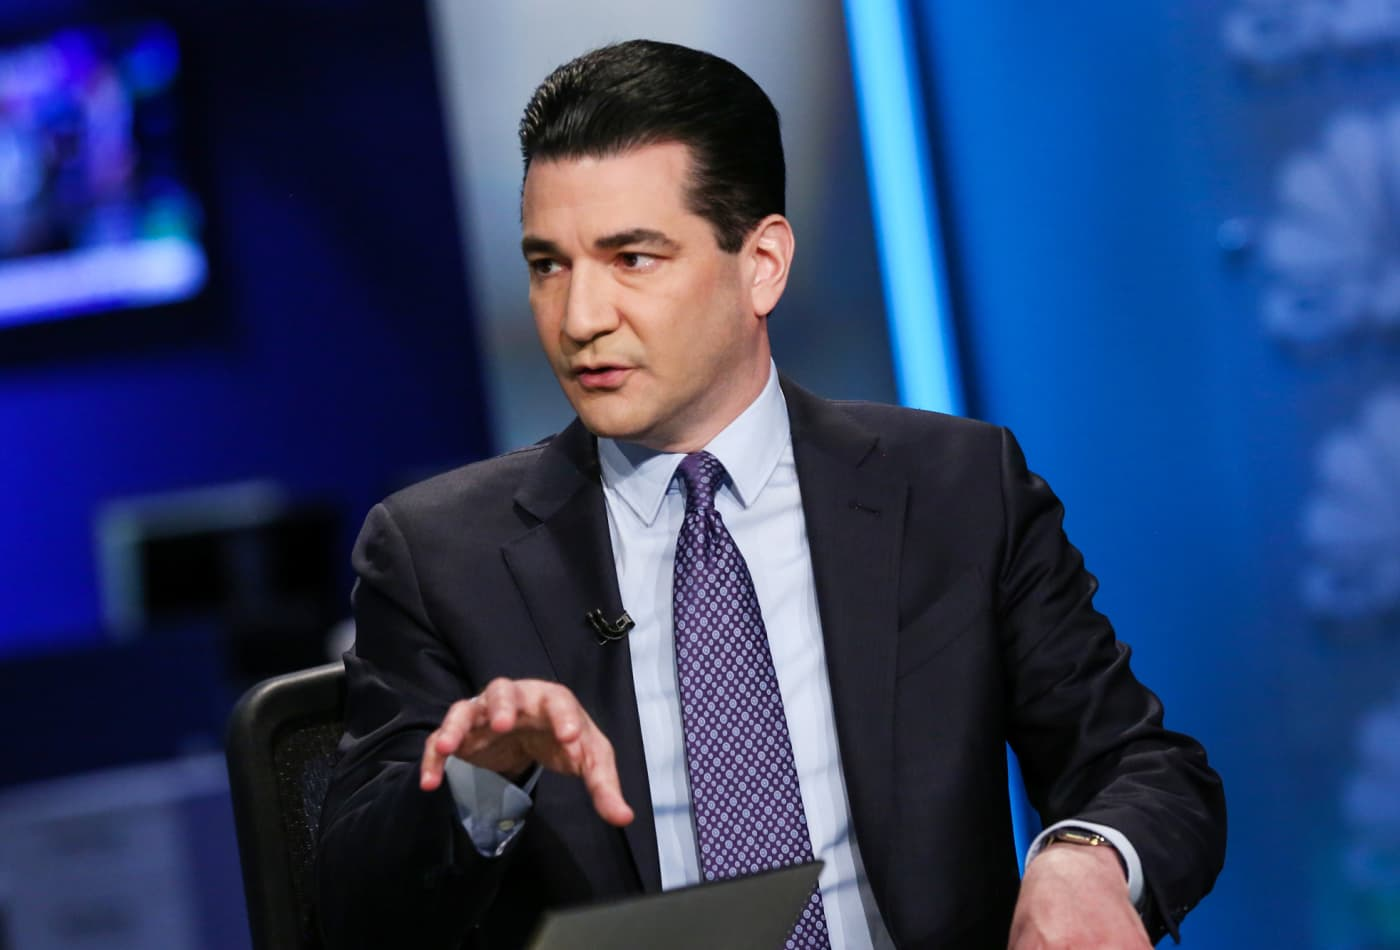 Former FDA chief Scott Gottlieb says it's likely nearly half the US will have had Covid-19 by the end of 2020